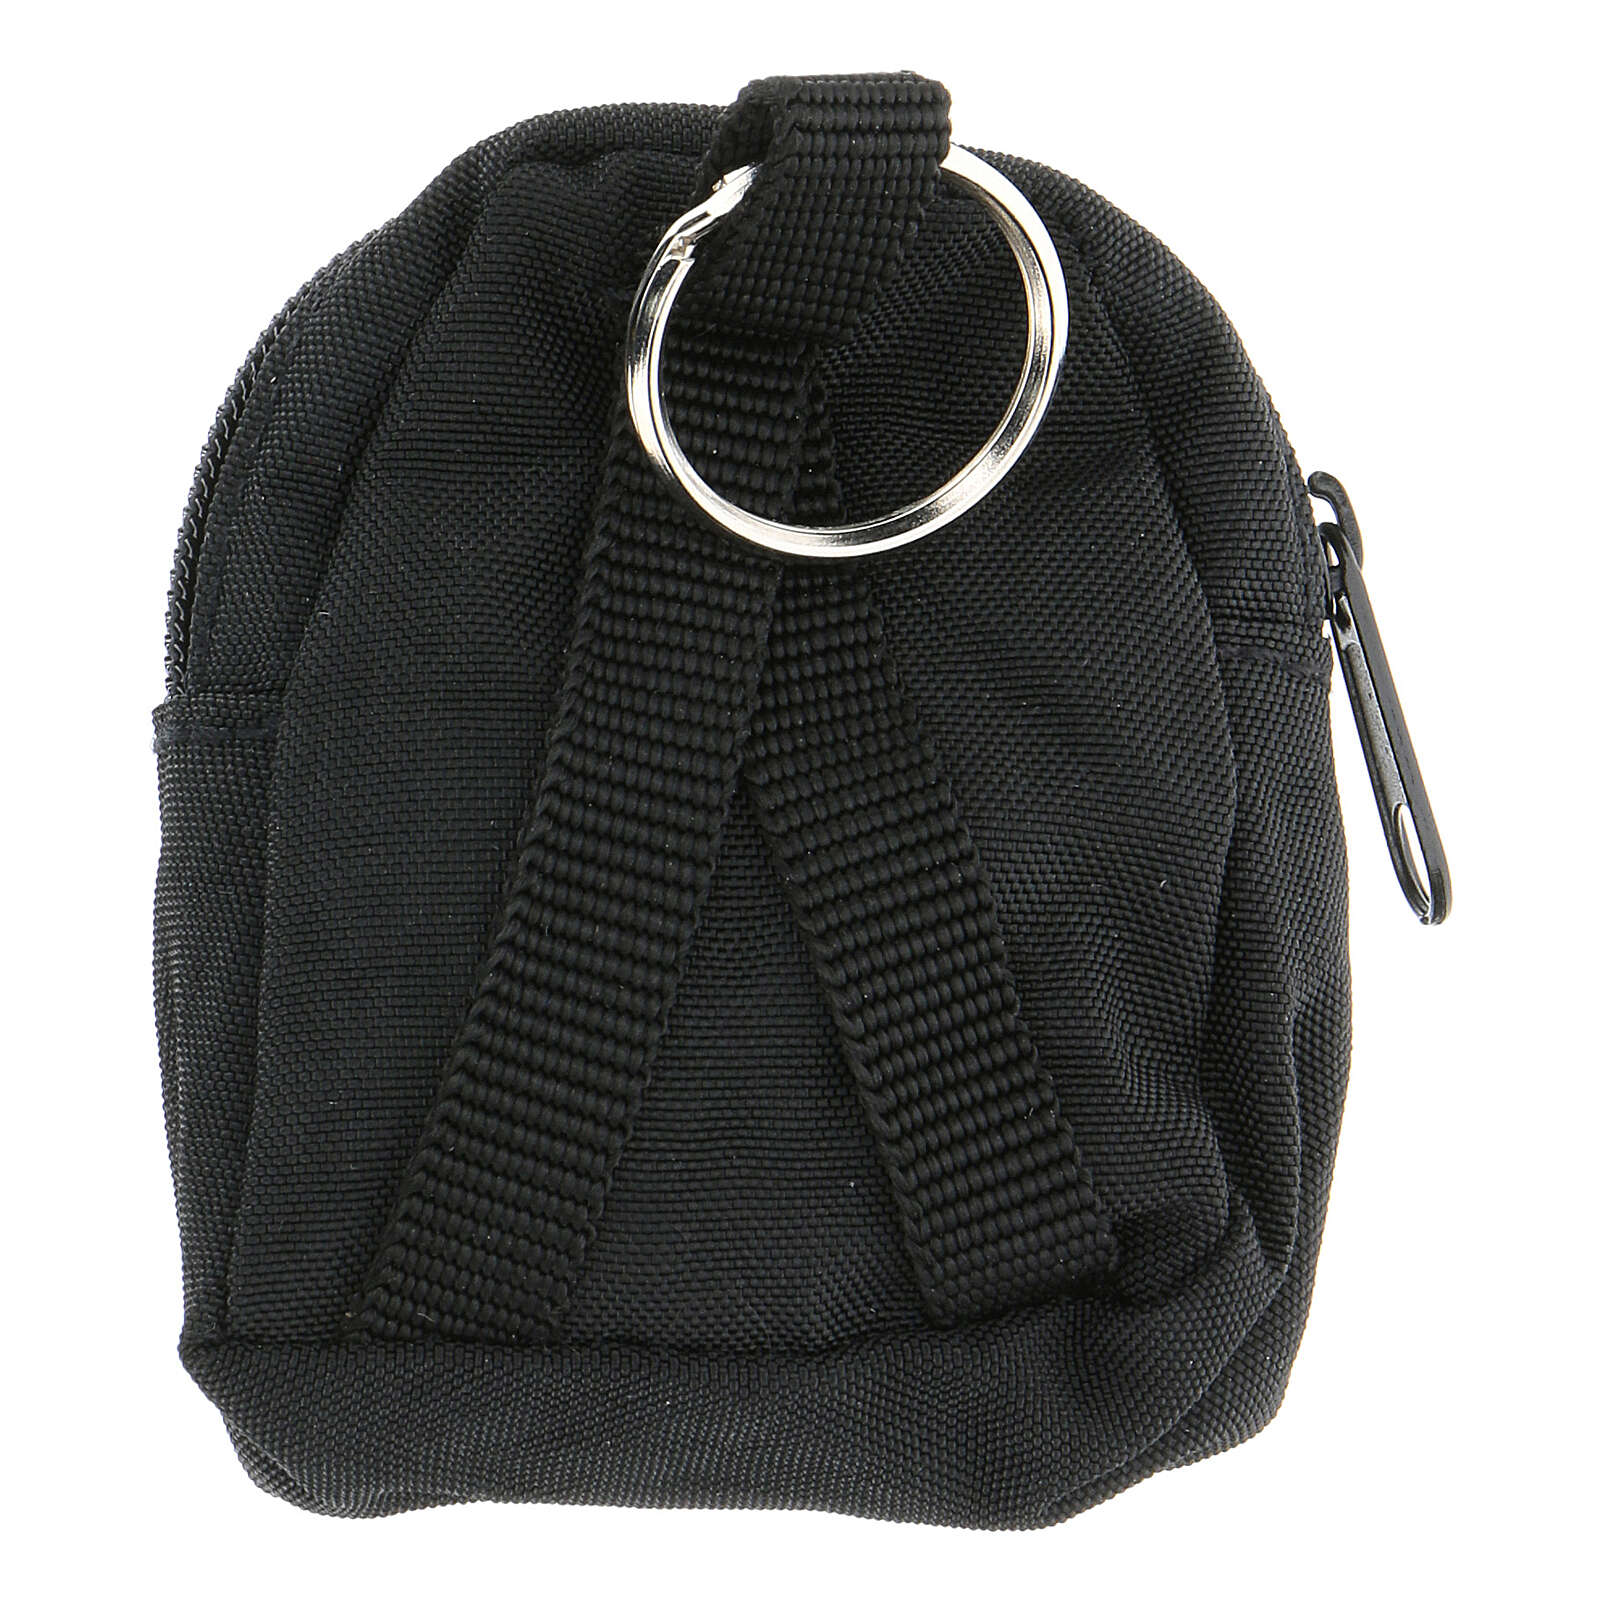 Black backpack key ring hand painted IHS 3